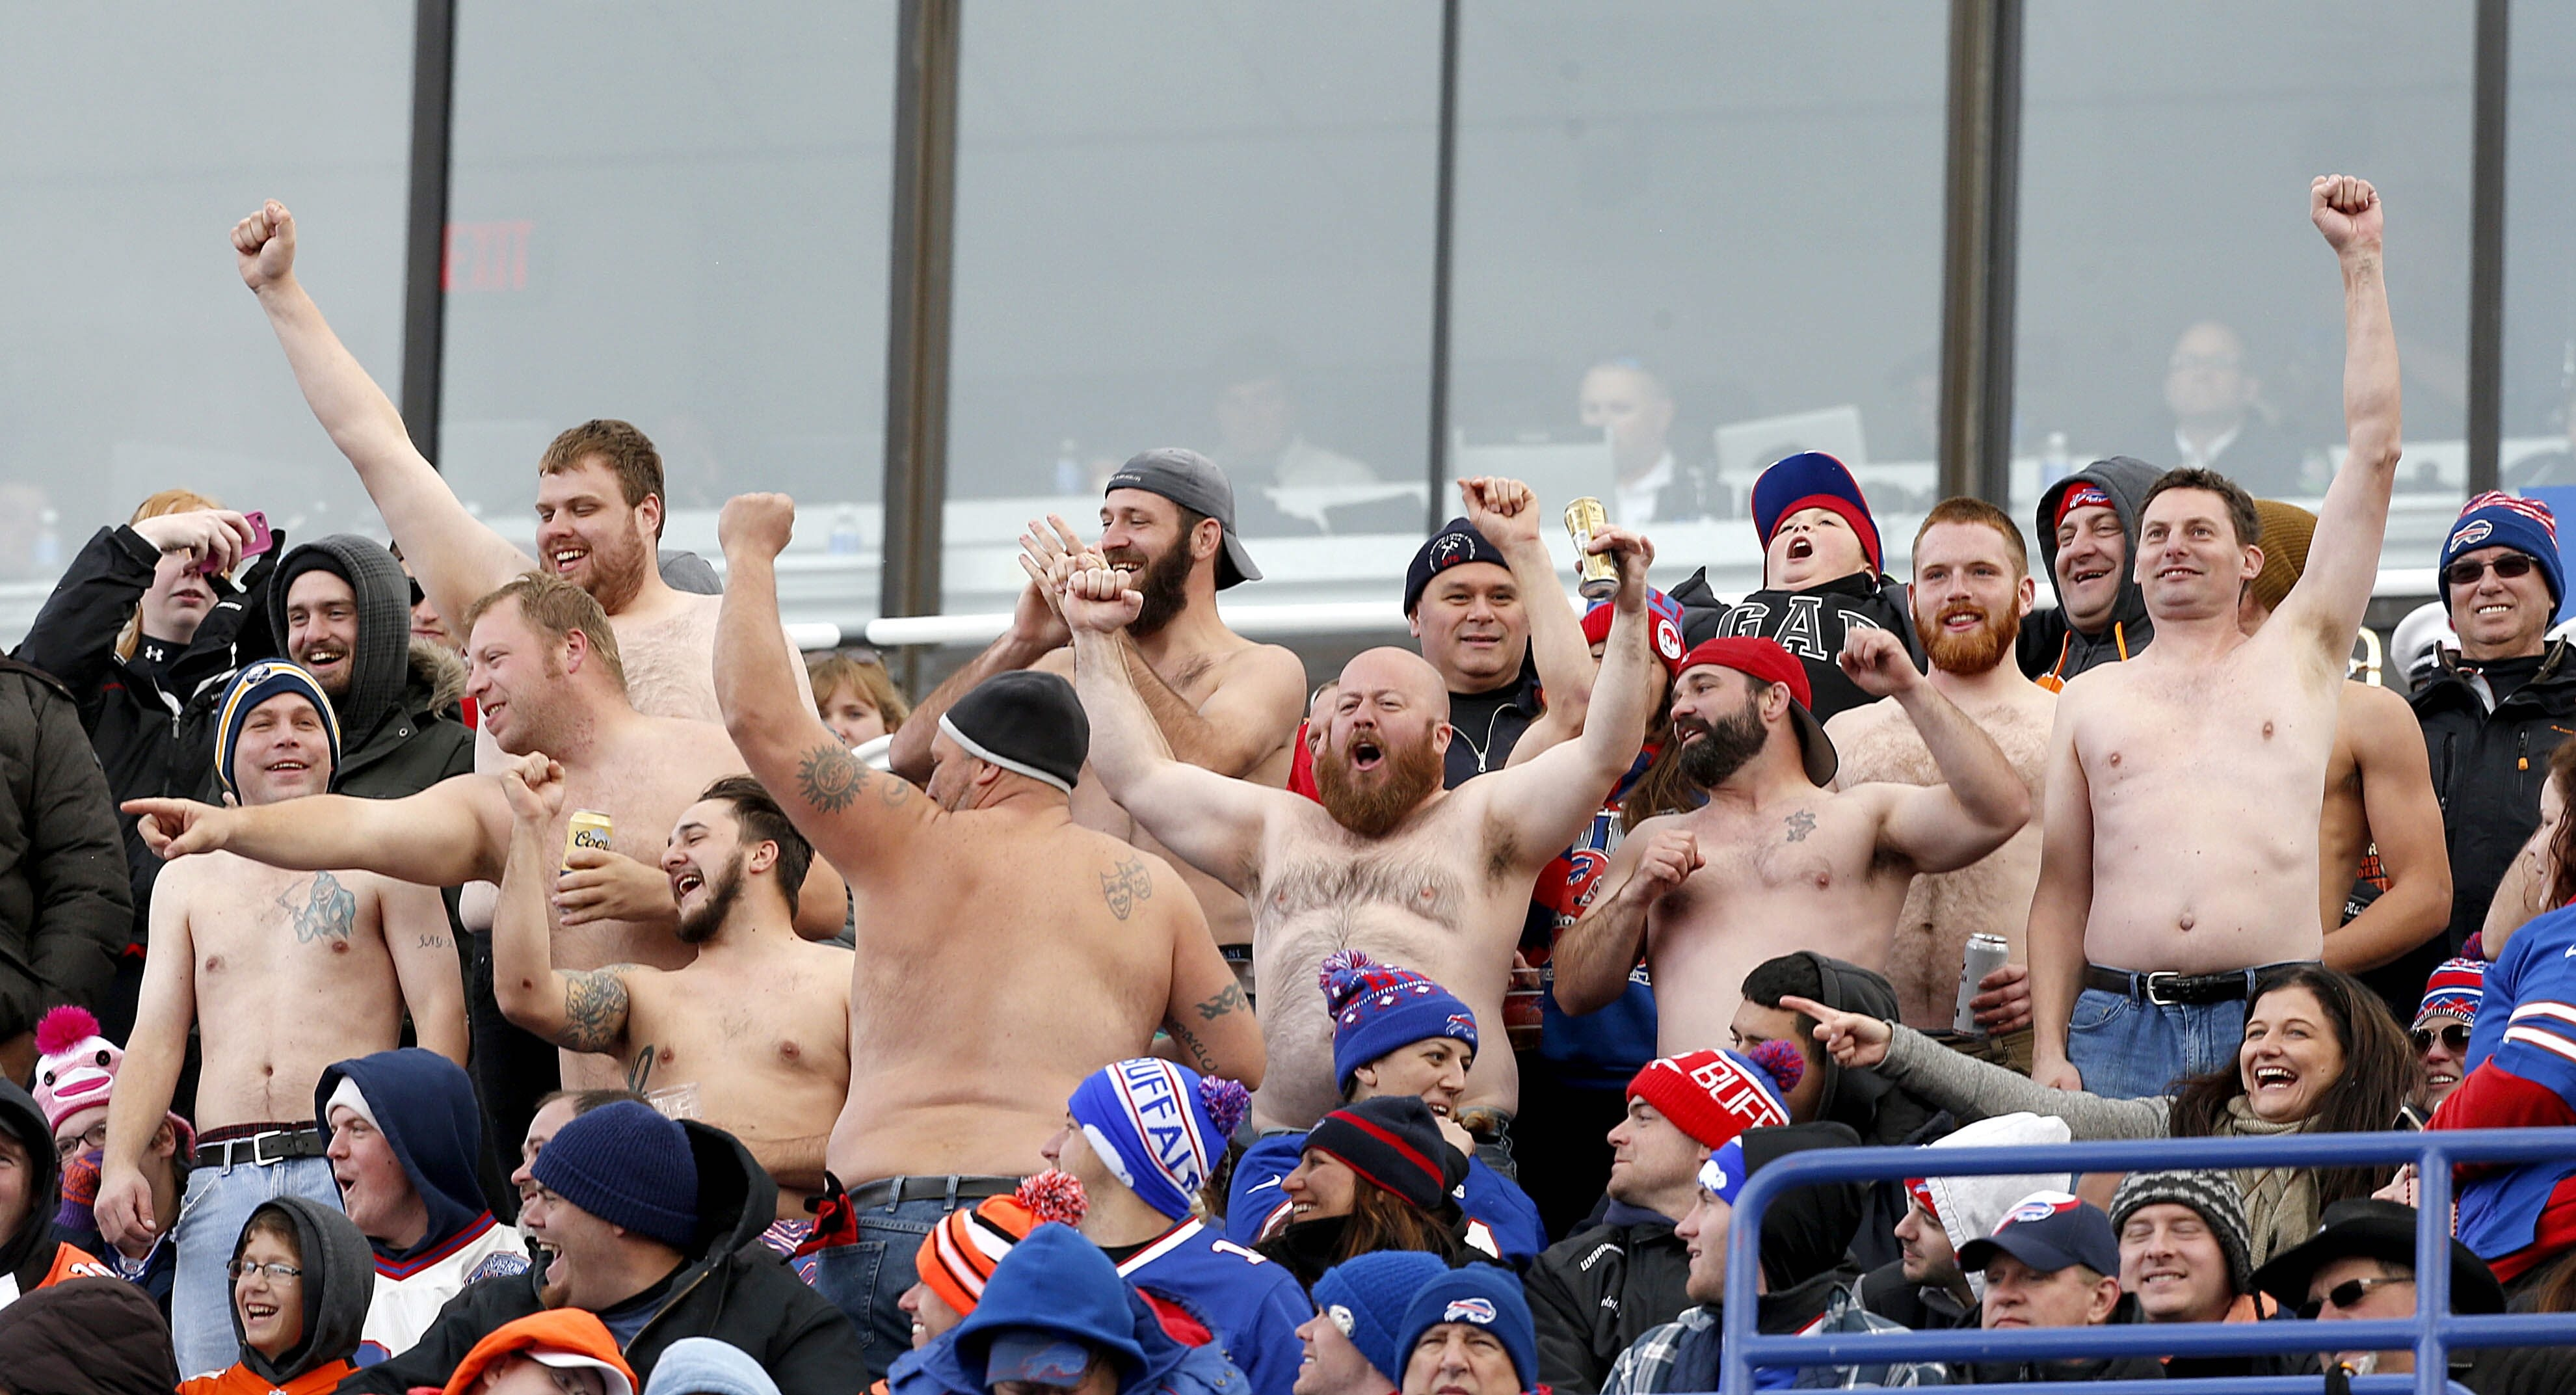 The sight of Bills fans going shirtless while the snow flies, in this October photo of Bills vs. Bengals game at Ralph Wilson Stadium, pales in comparison to the tailgating antics of a few fans captured on cellphone videos.  (Robert Kirkham/Buffalo News)